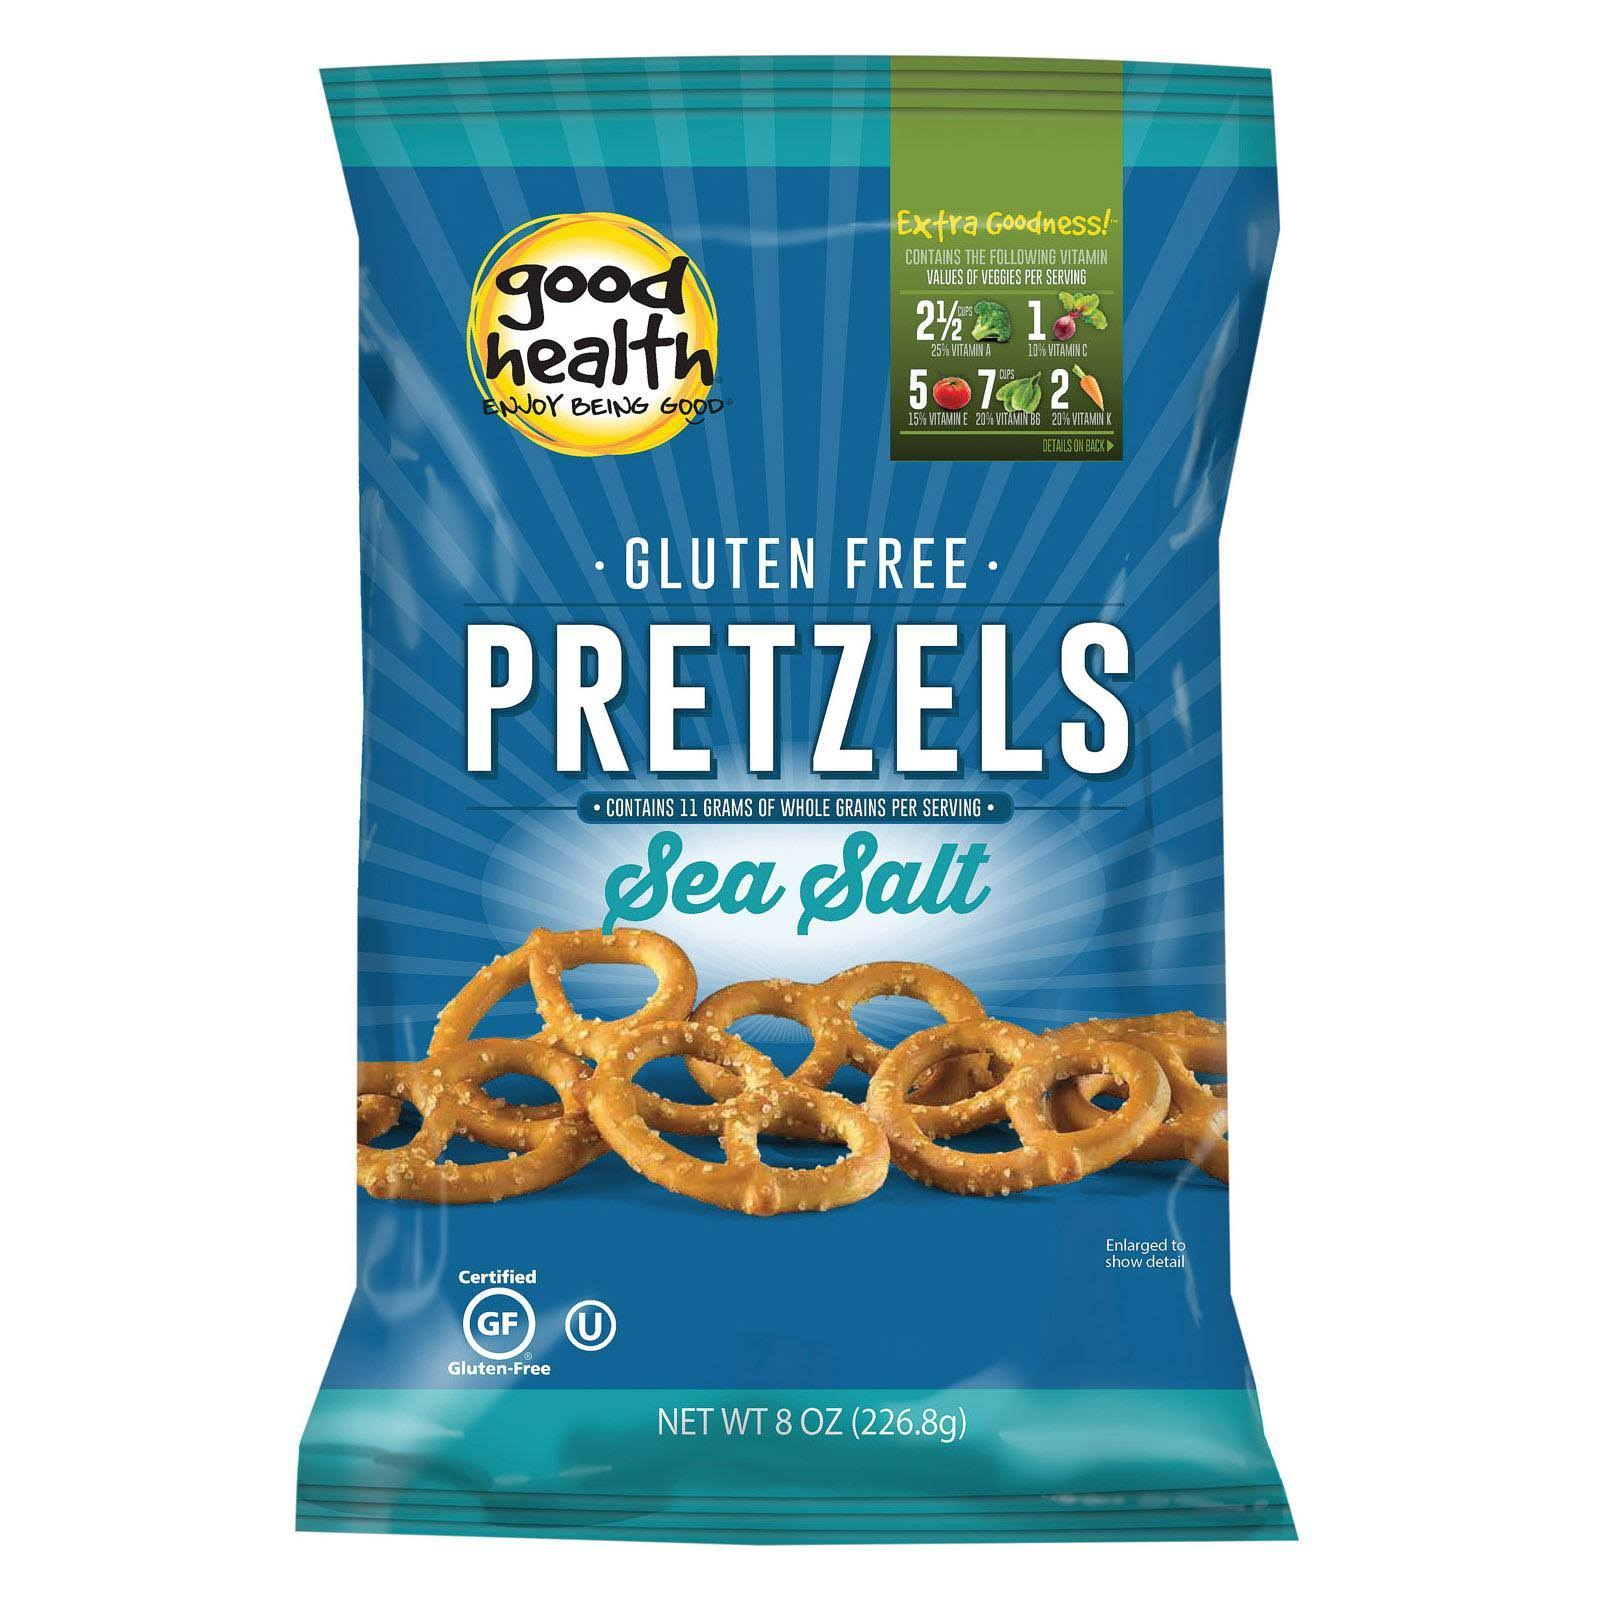 Good Health Gluten Free Pretzels - Sea Salt, 8oz